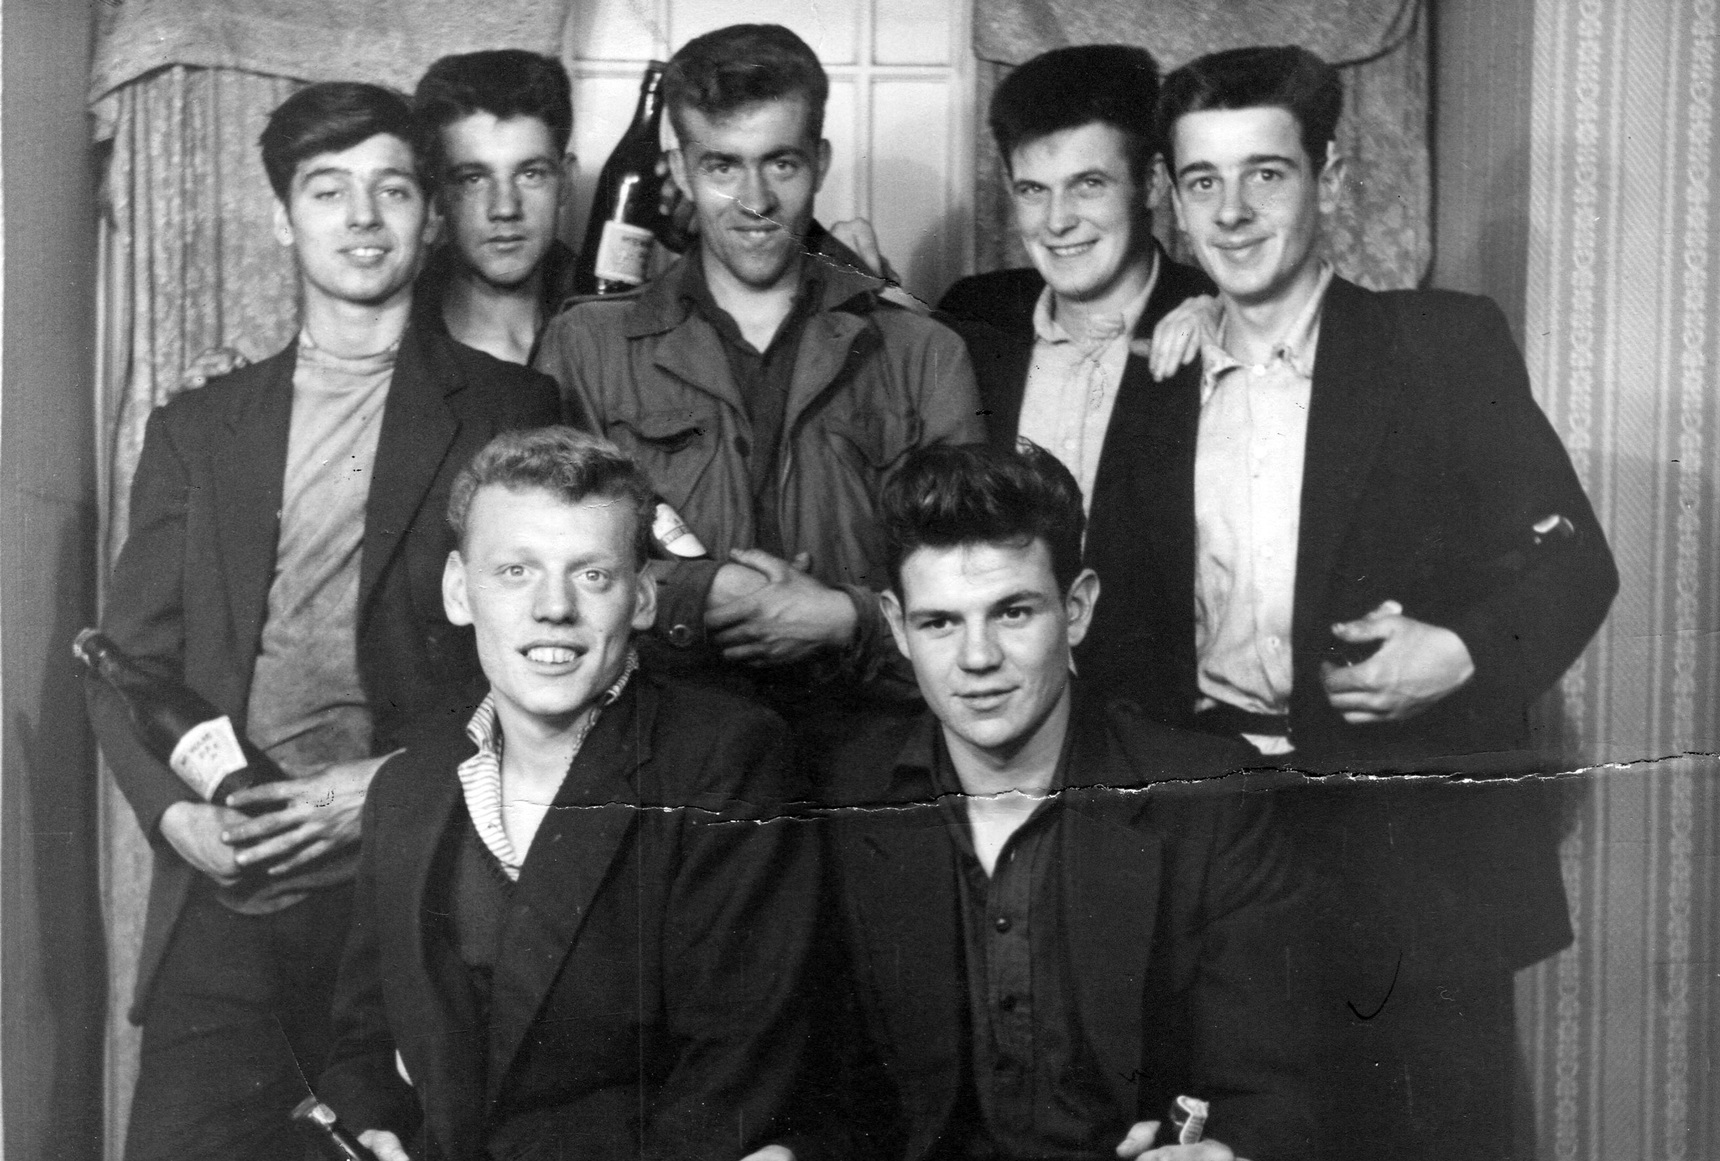 Young Apprentices At Henry Robb's Shipyard, July 1958